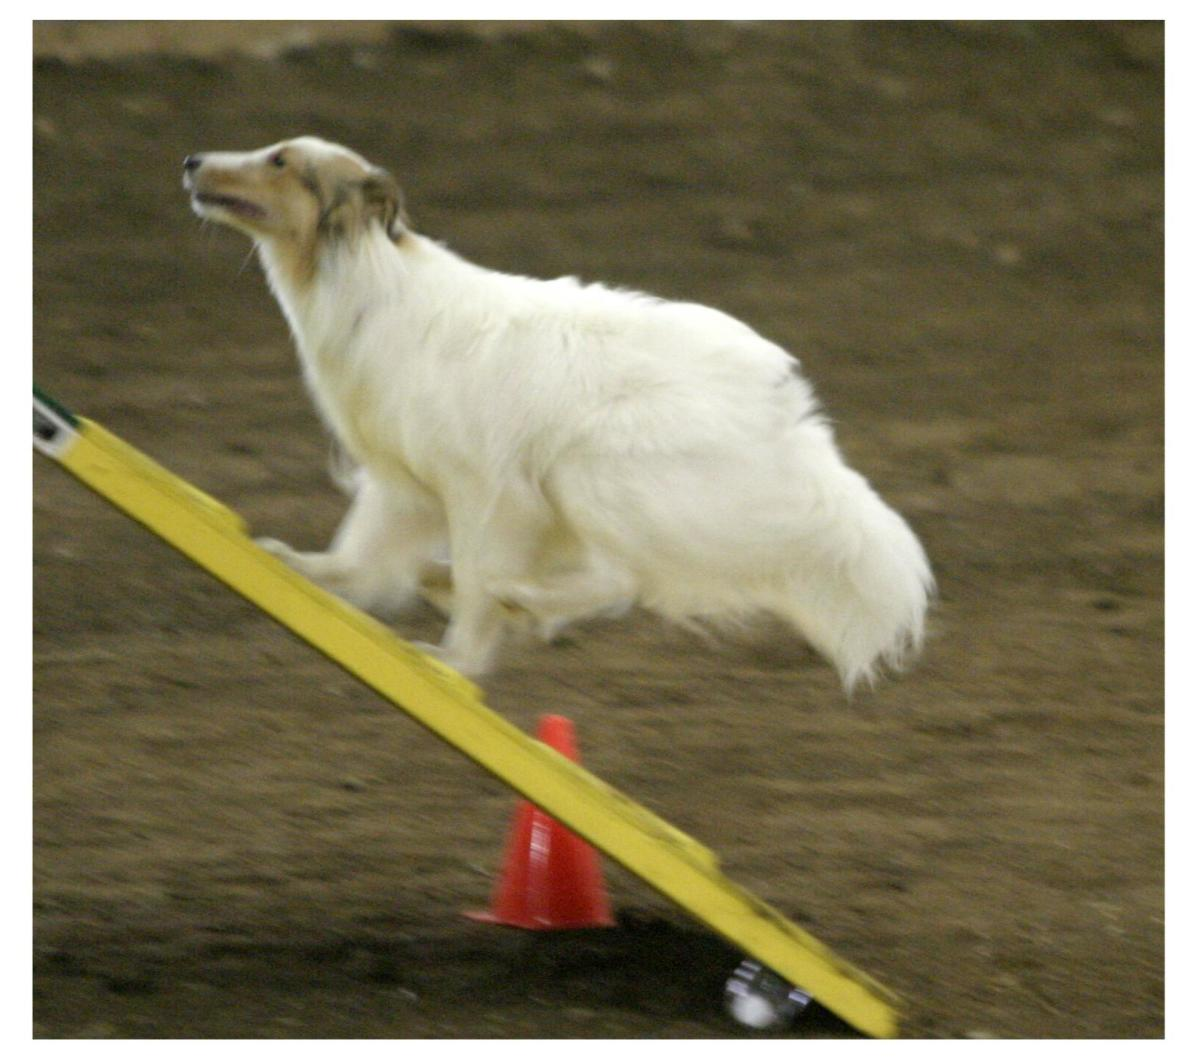 The author's sheltie, Jericho, charging with confidence up the A frame in the Novice (beginners) Class.